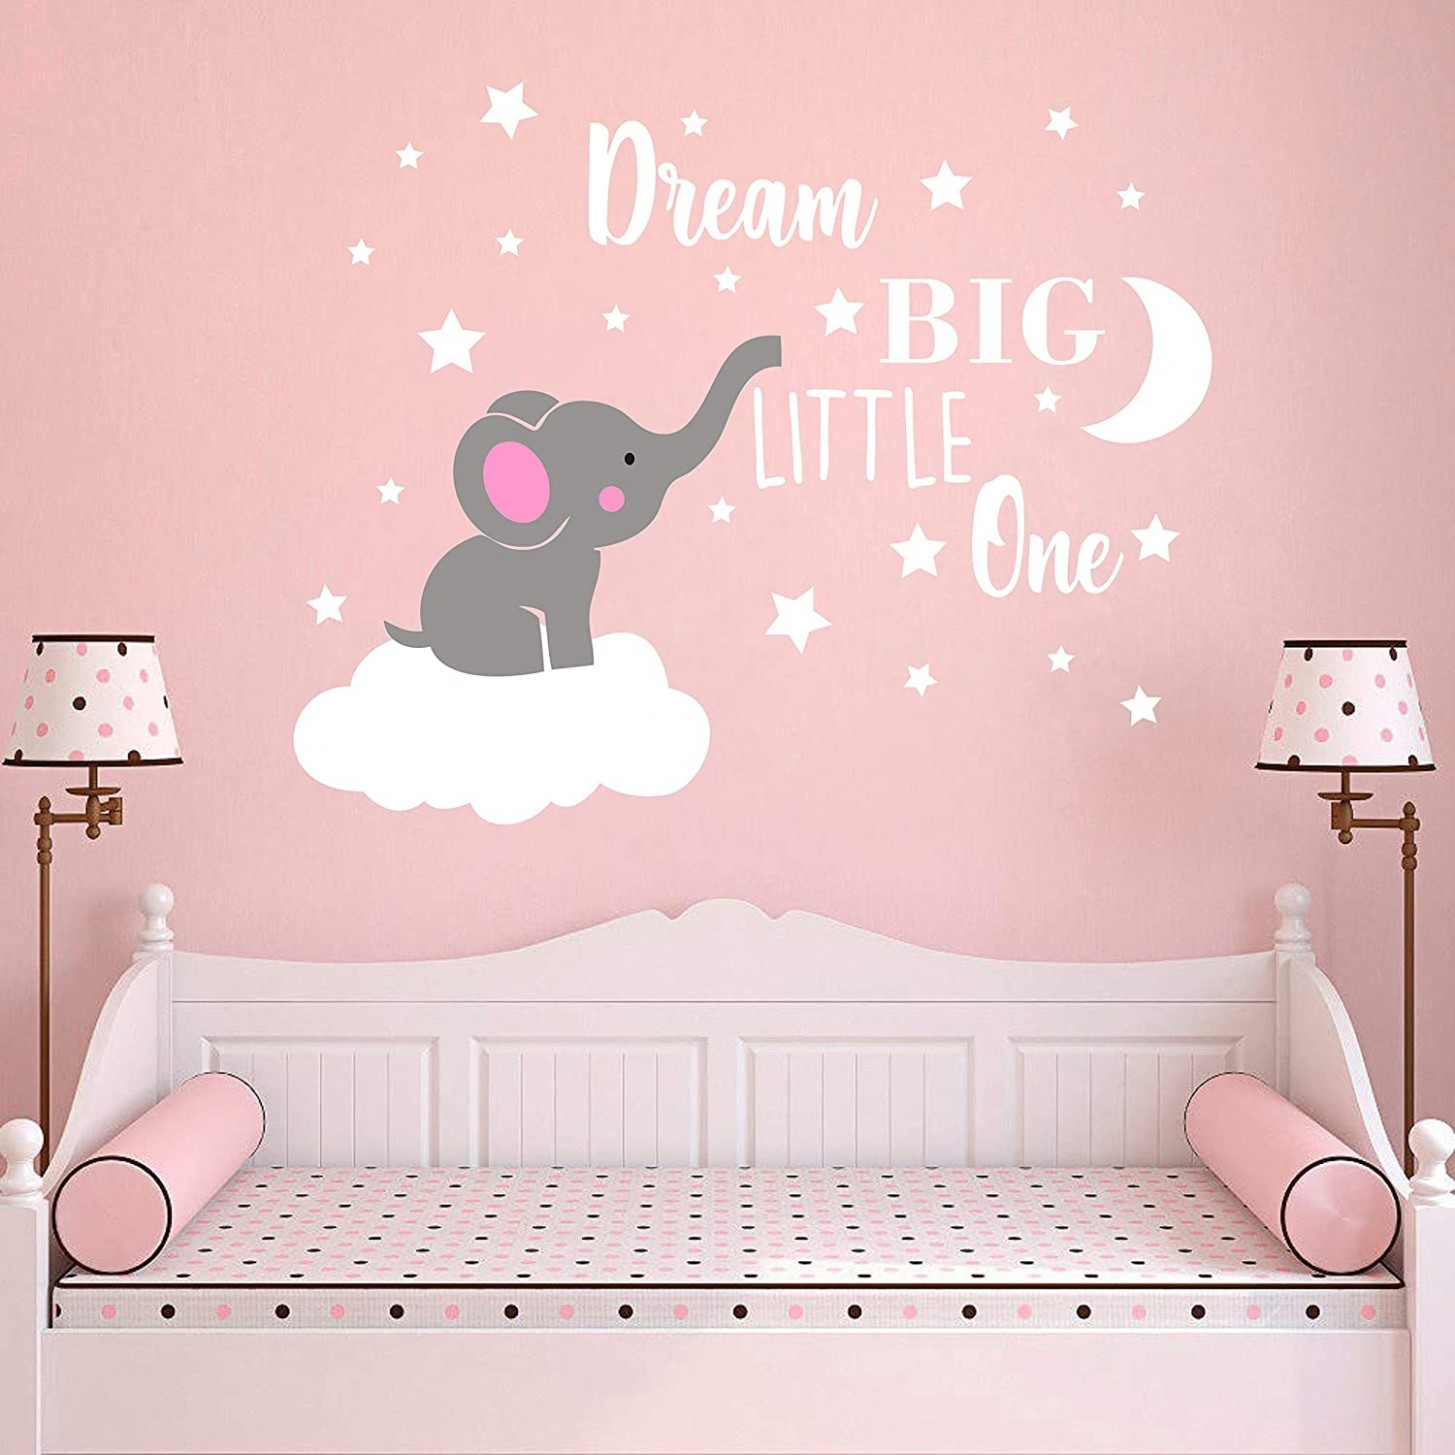 Dream Big Little One Elephant Wall Decal, Quote Wall Stickers, Baby Room  Wall Decor, Vinyl Wall Decals for Children Baby Kids Boy Girl Bedroom  Nursery  - Baby Room Wall Decor